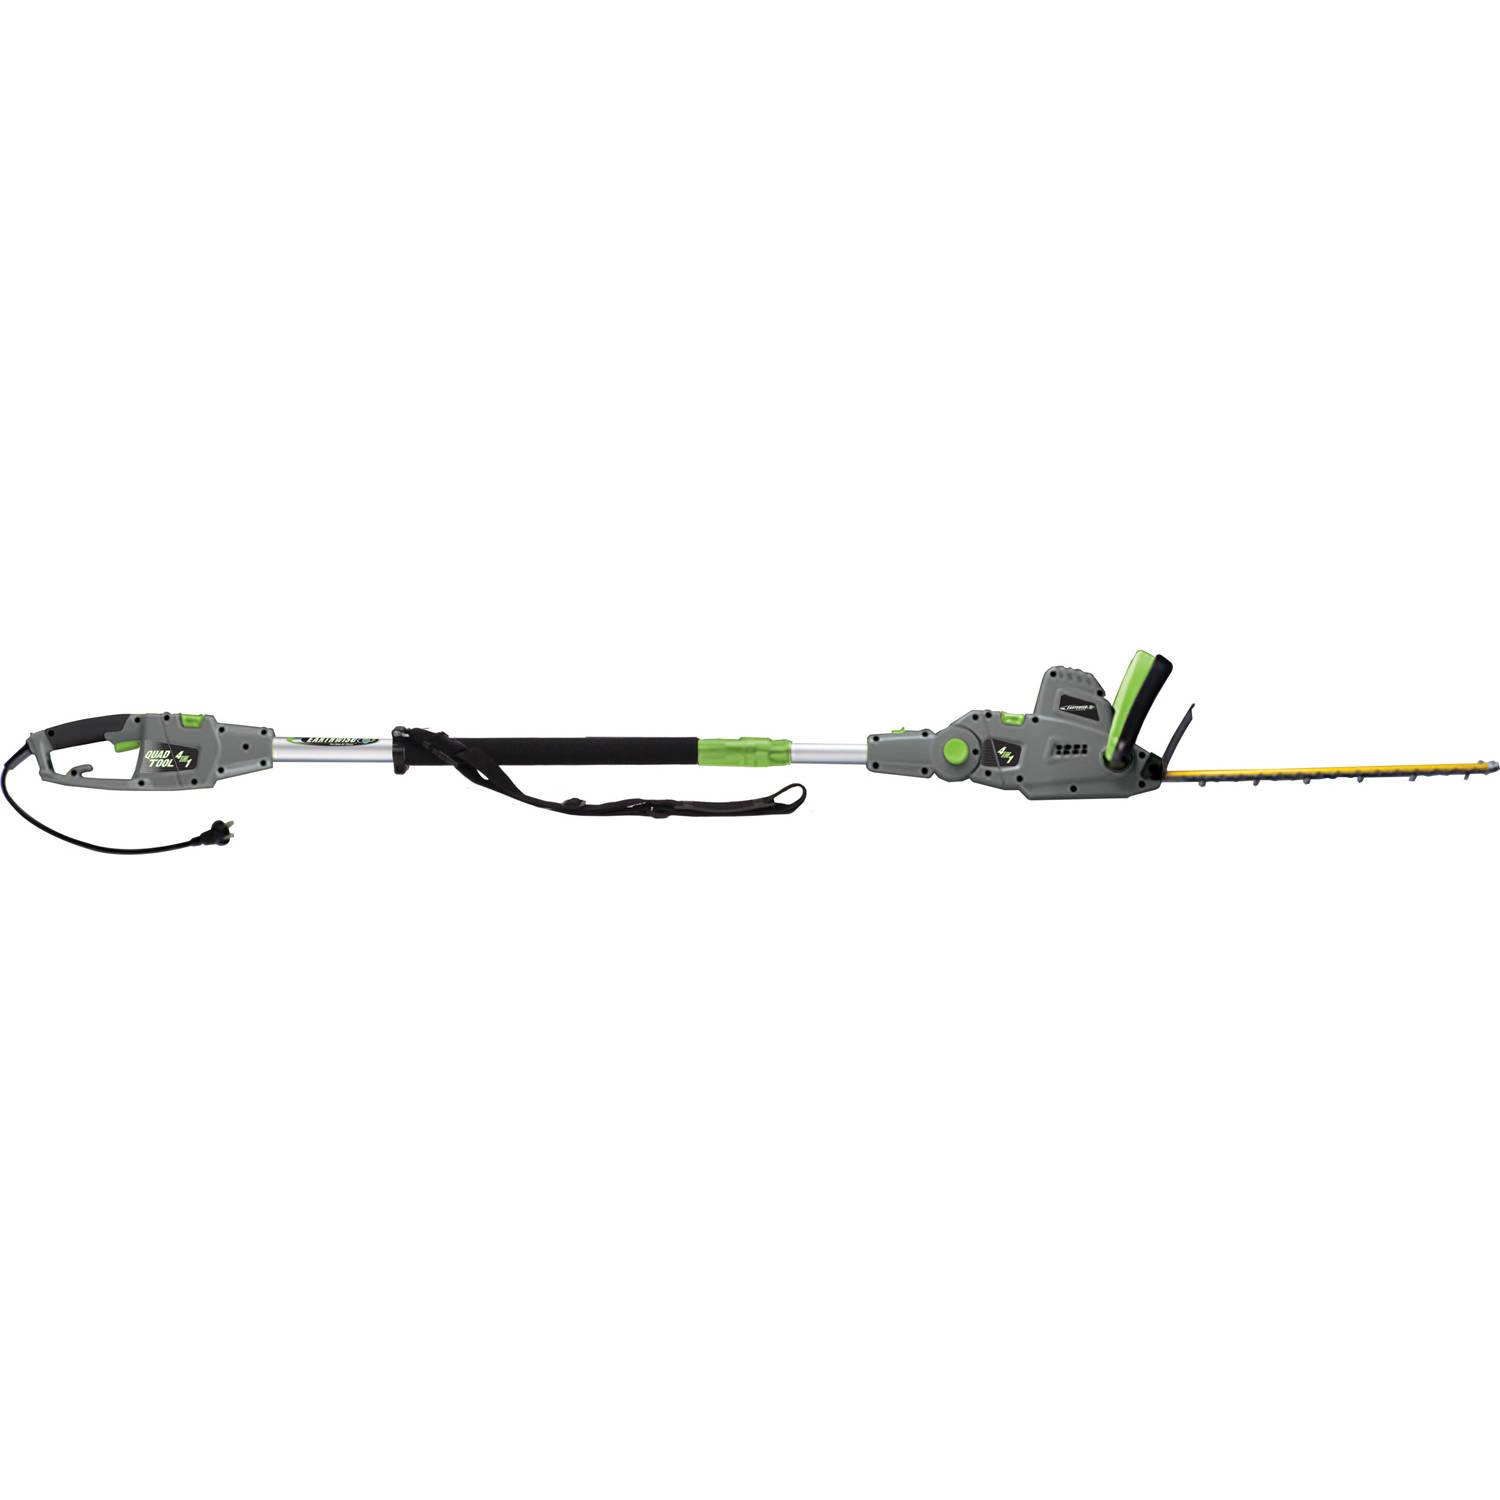 Earthwise CVPH43018 2-In-1 Convertible Pole Hedge Trimmer Hand Held Hedge Trimmer by Great States Corporation